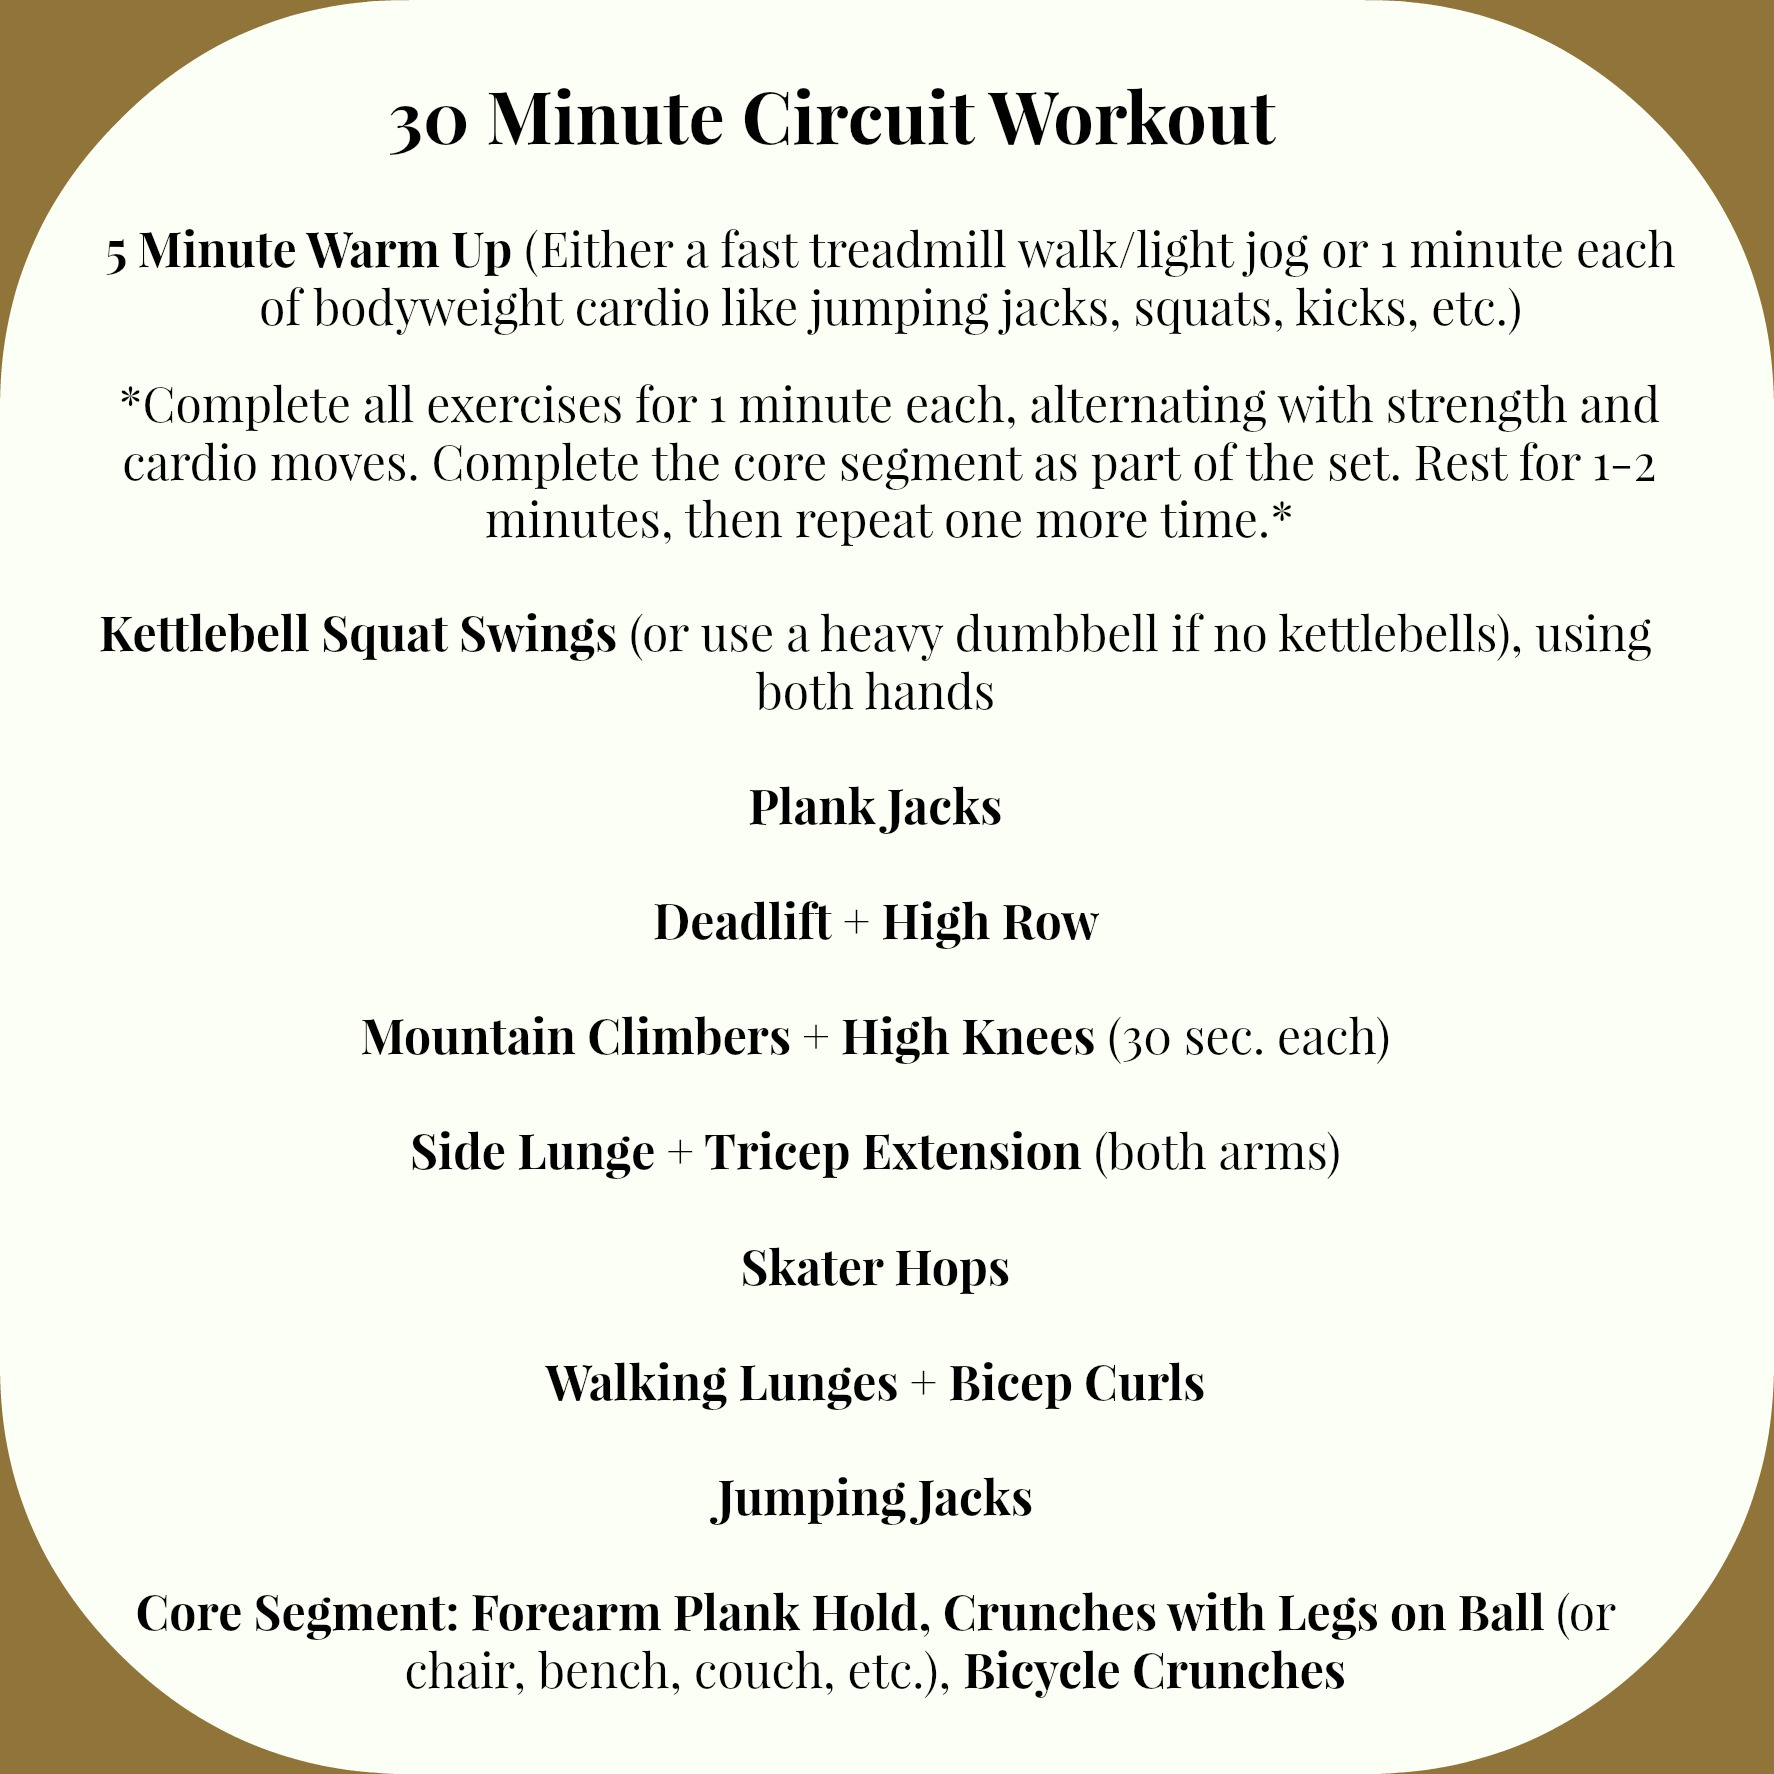 30 Minute Circuit Workout